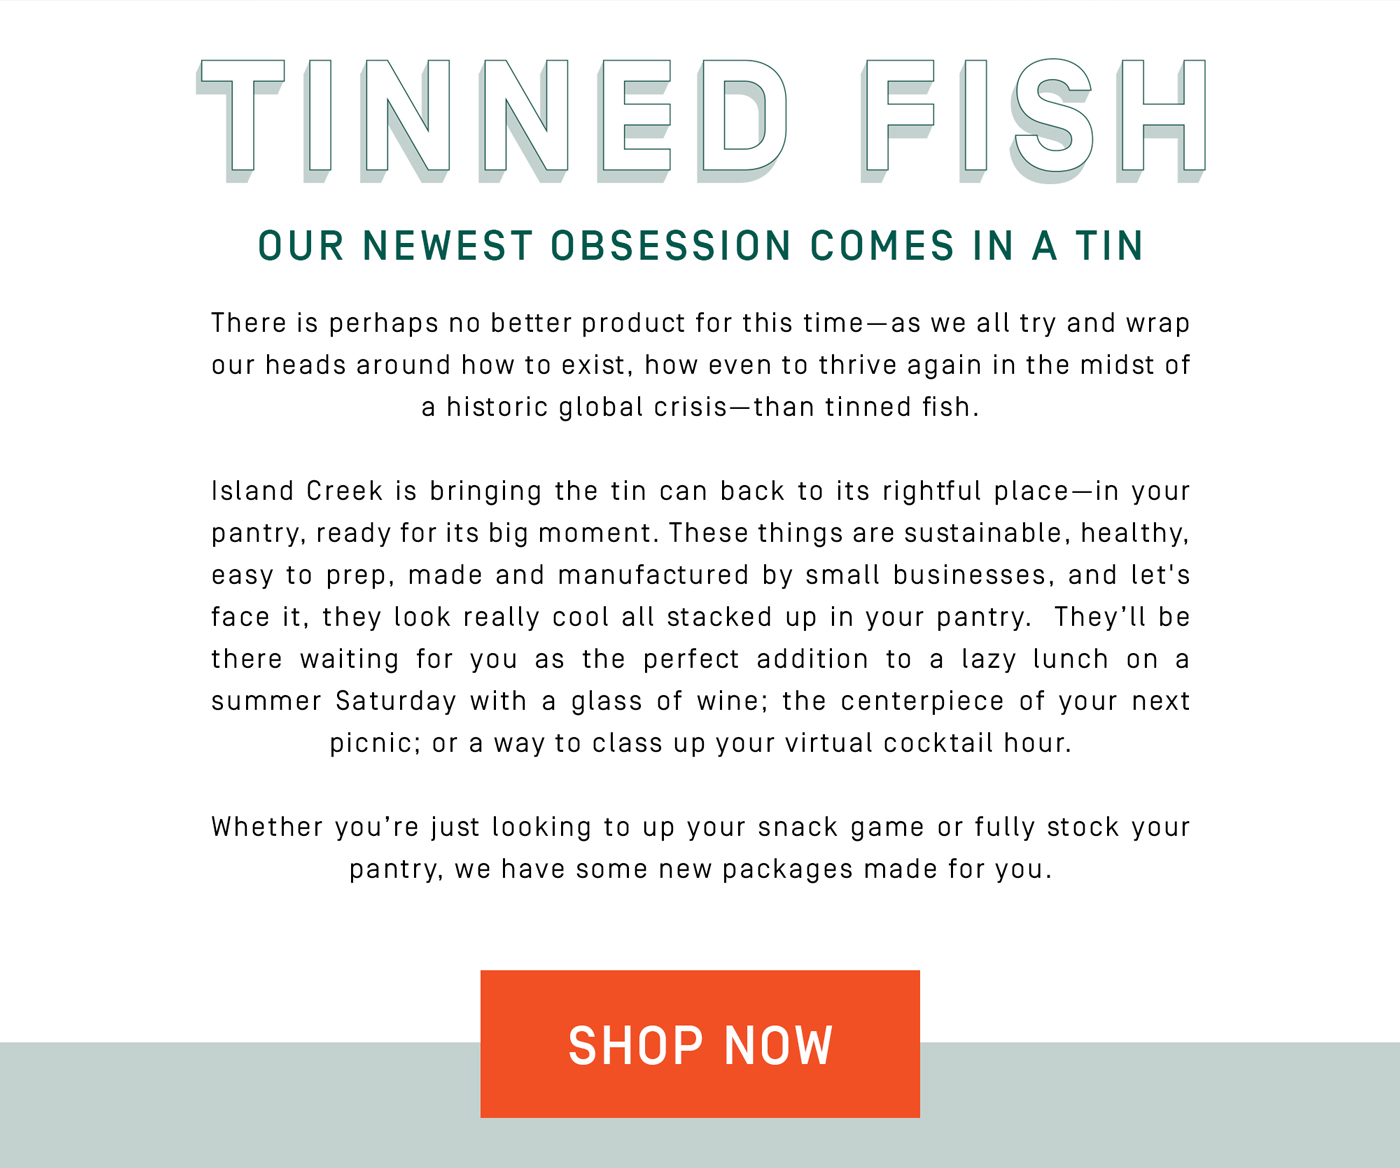 Tinned Fish. Our newest obsessions comes in a tin. Shop now!